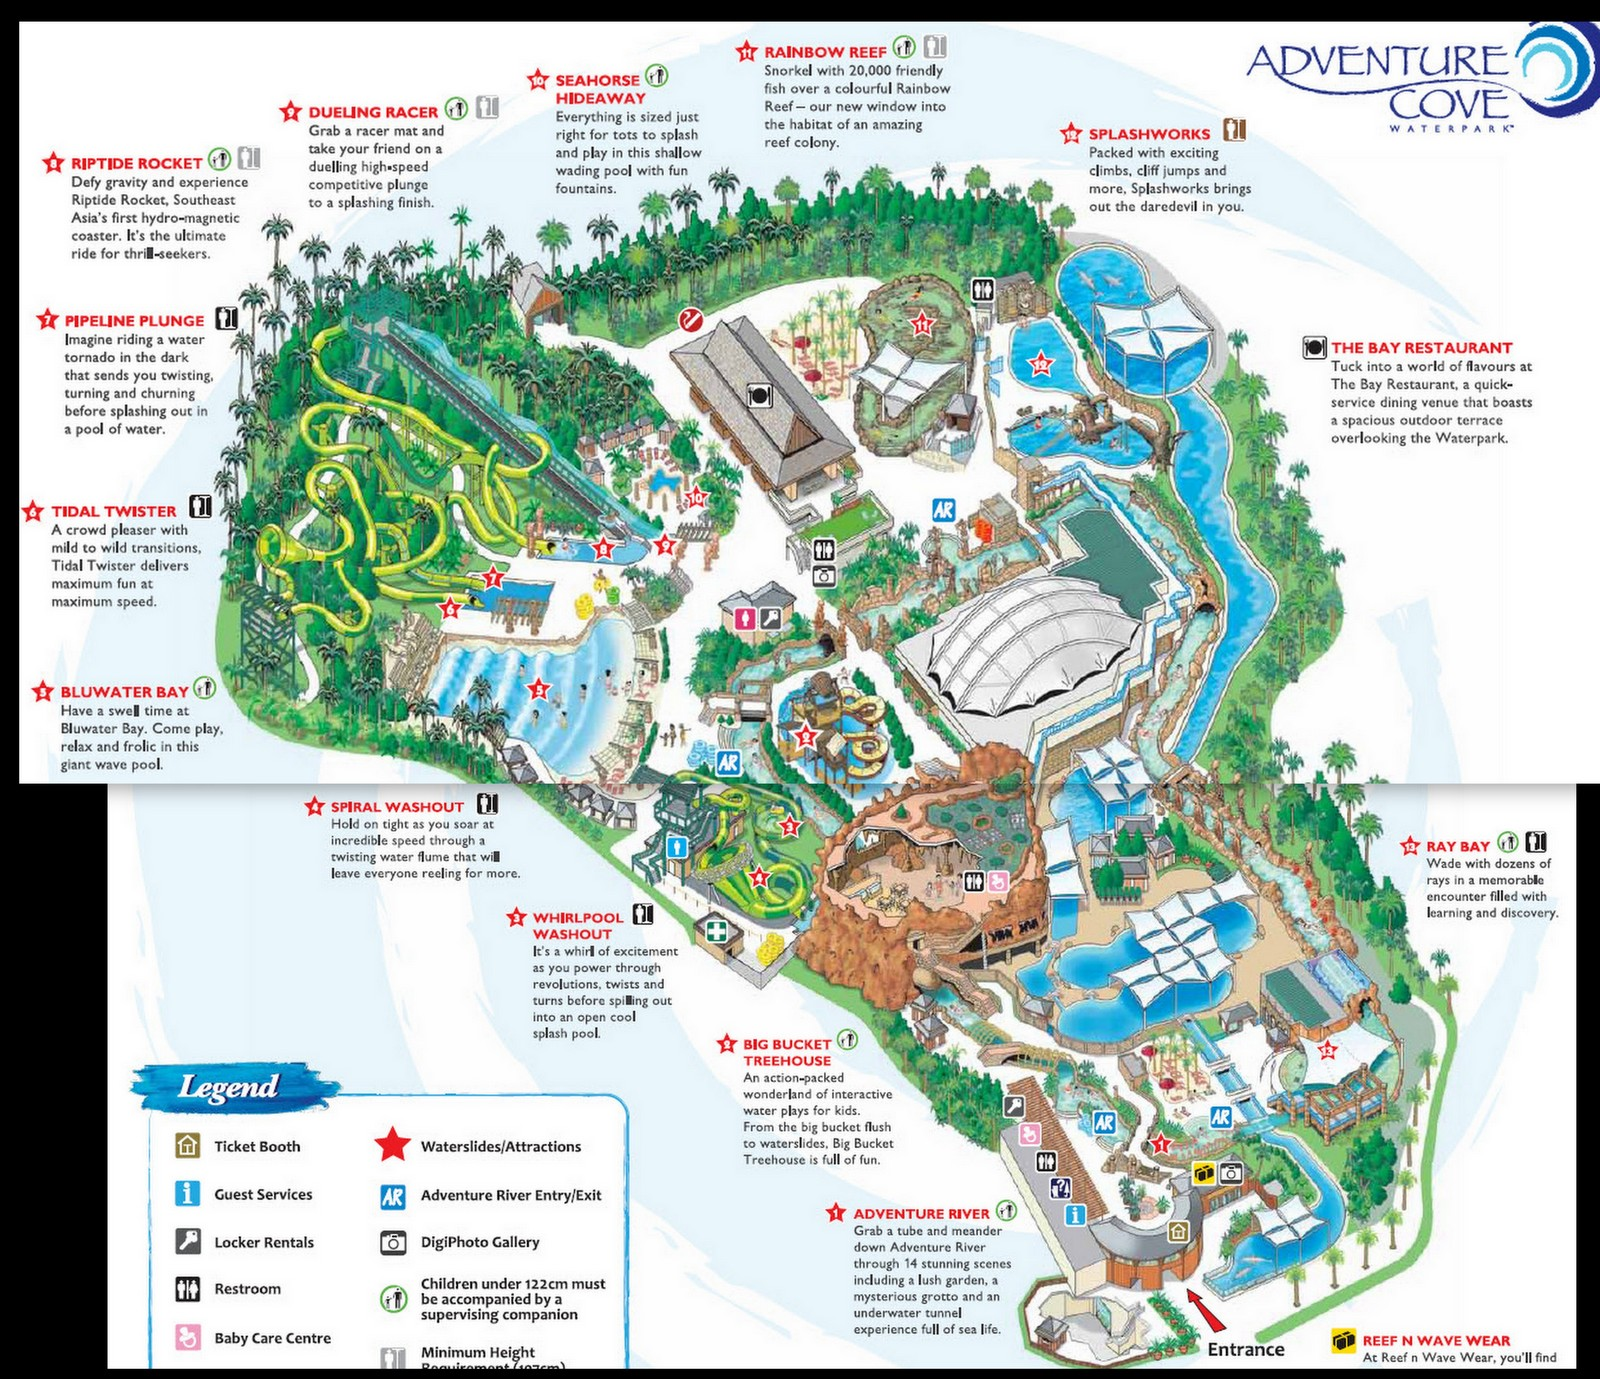 adventure cove map